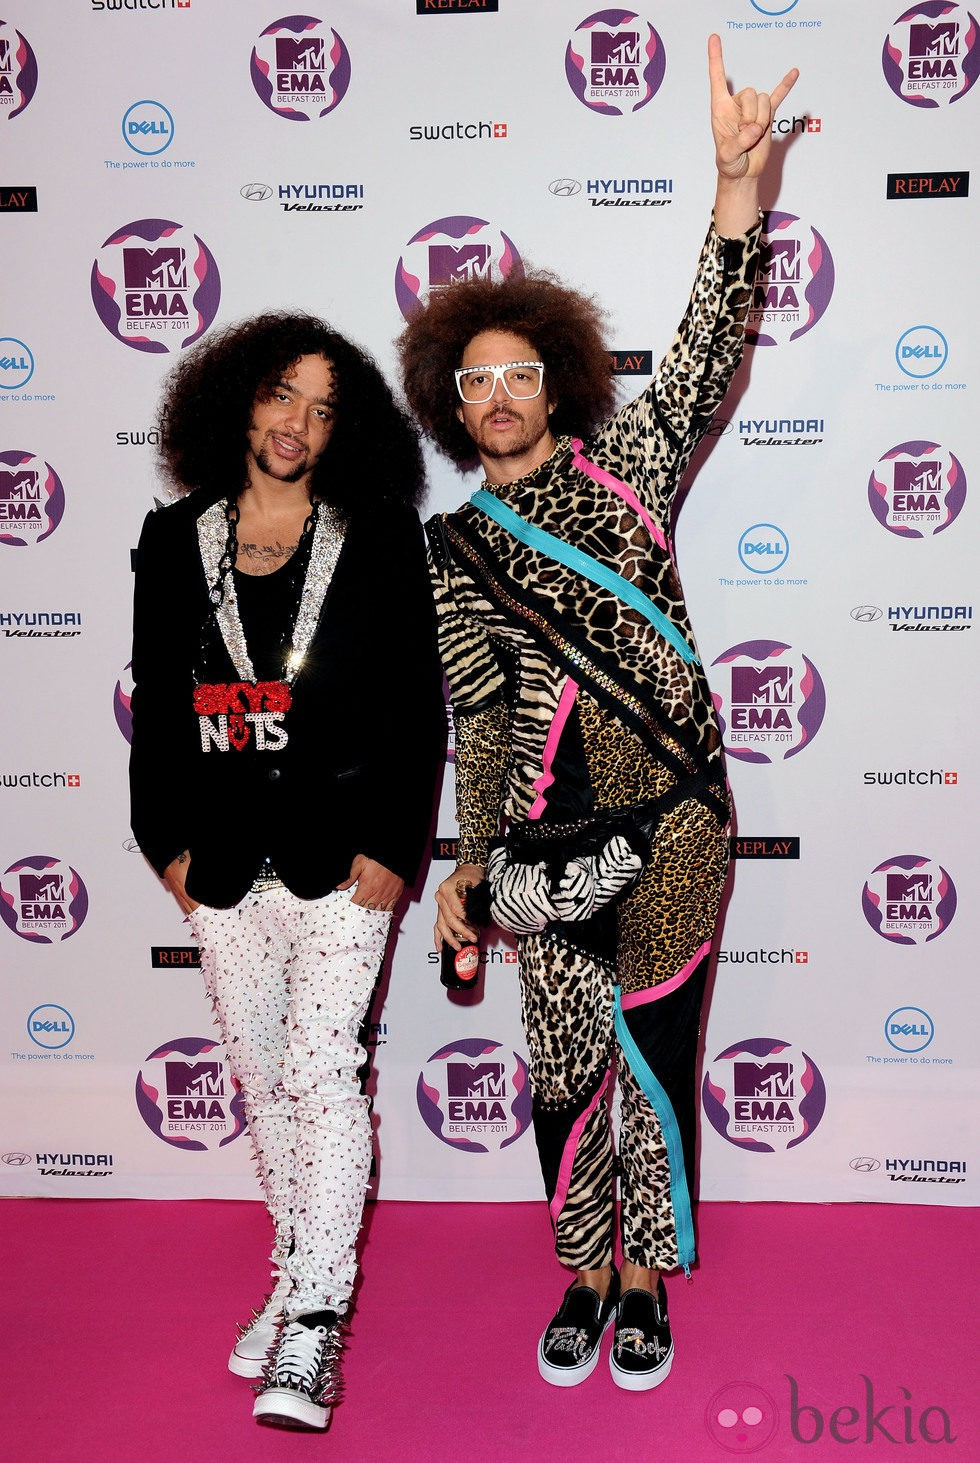 LMFAO en los MTV Europe Music Awards 2011 con sus melenas cardadas